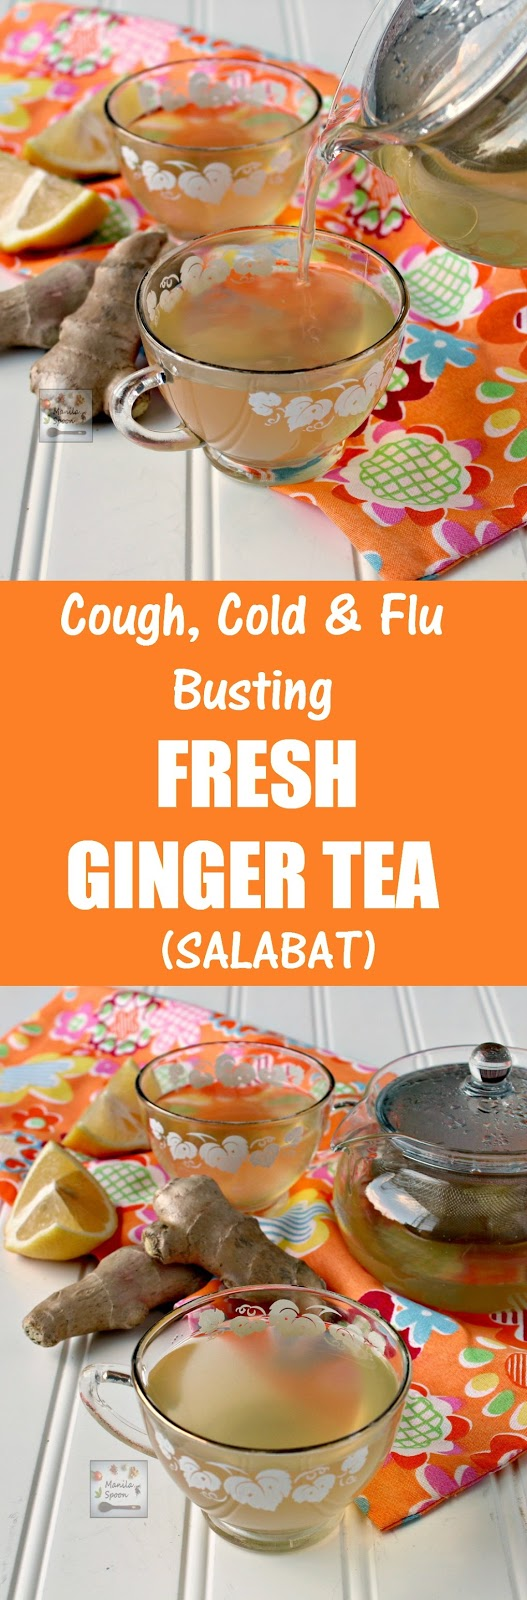 This is what I drink whenever I feel the onset of cold,cough, sore throat or flu. This fresh ginger tea with honey (salabat) helps boost your immune system and fight the nasty bugs. A delicious natural remedy that's also perfect for tea time. | manilaspoon.com